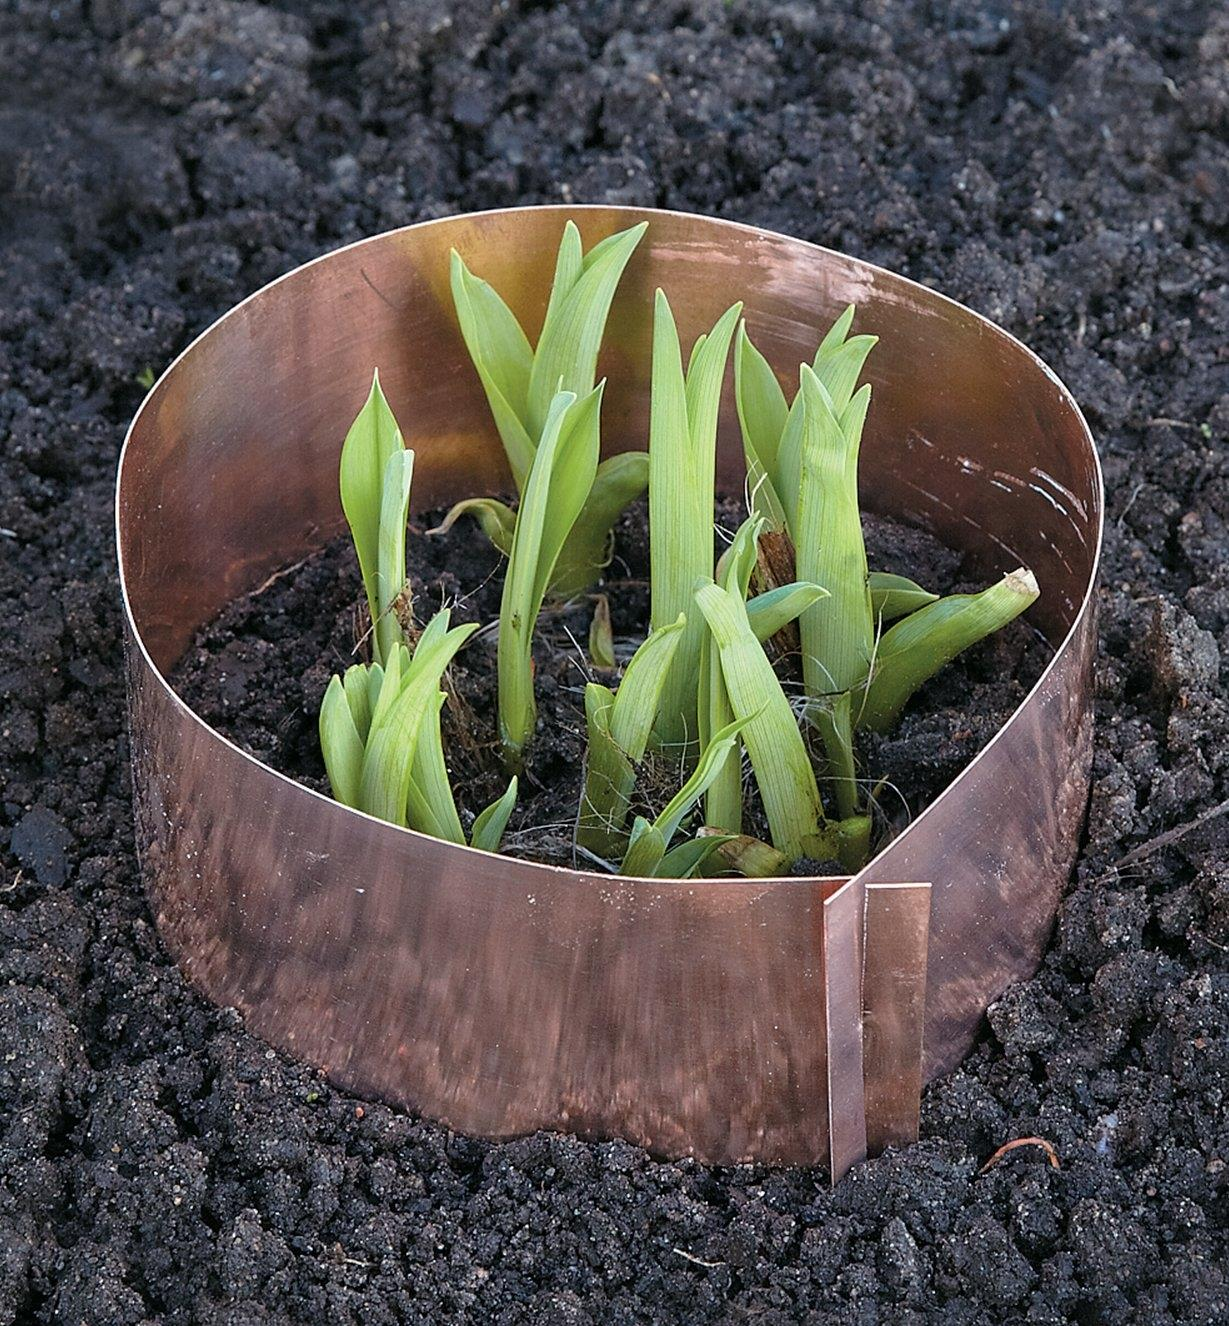 Copper Slug Ring encircling plant shoots